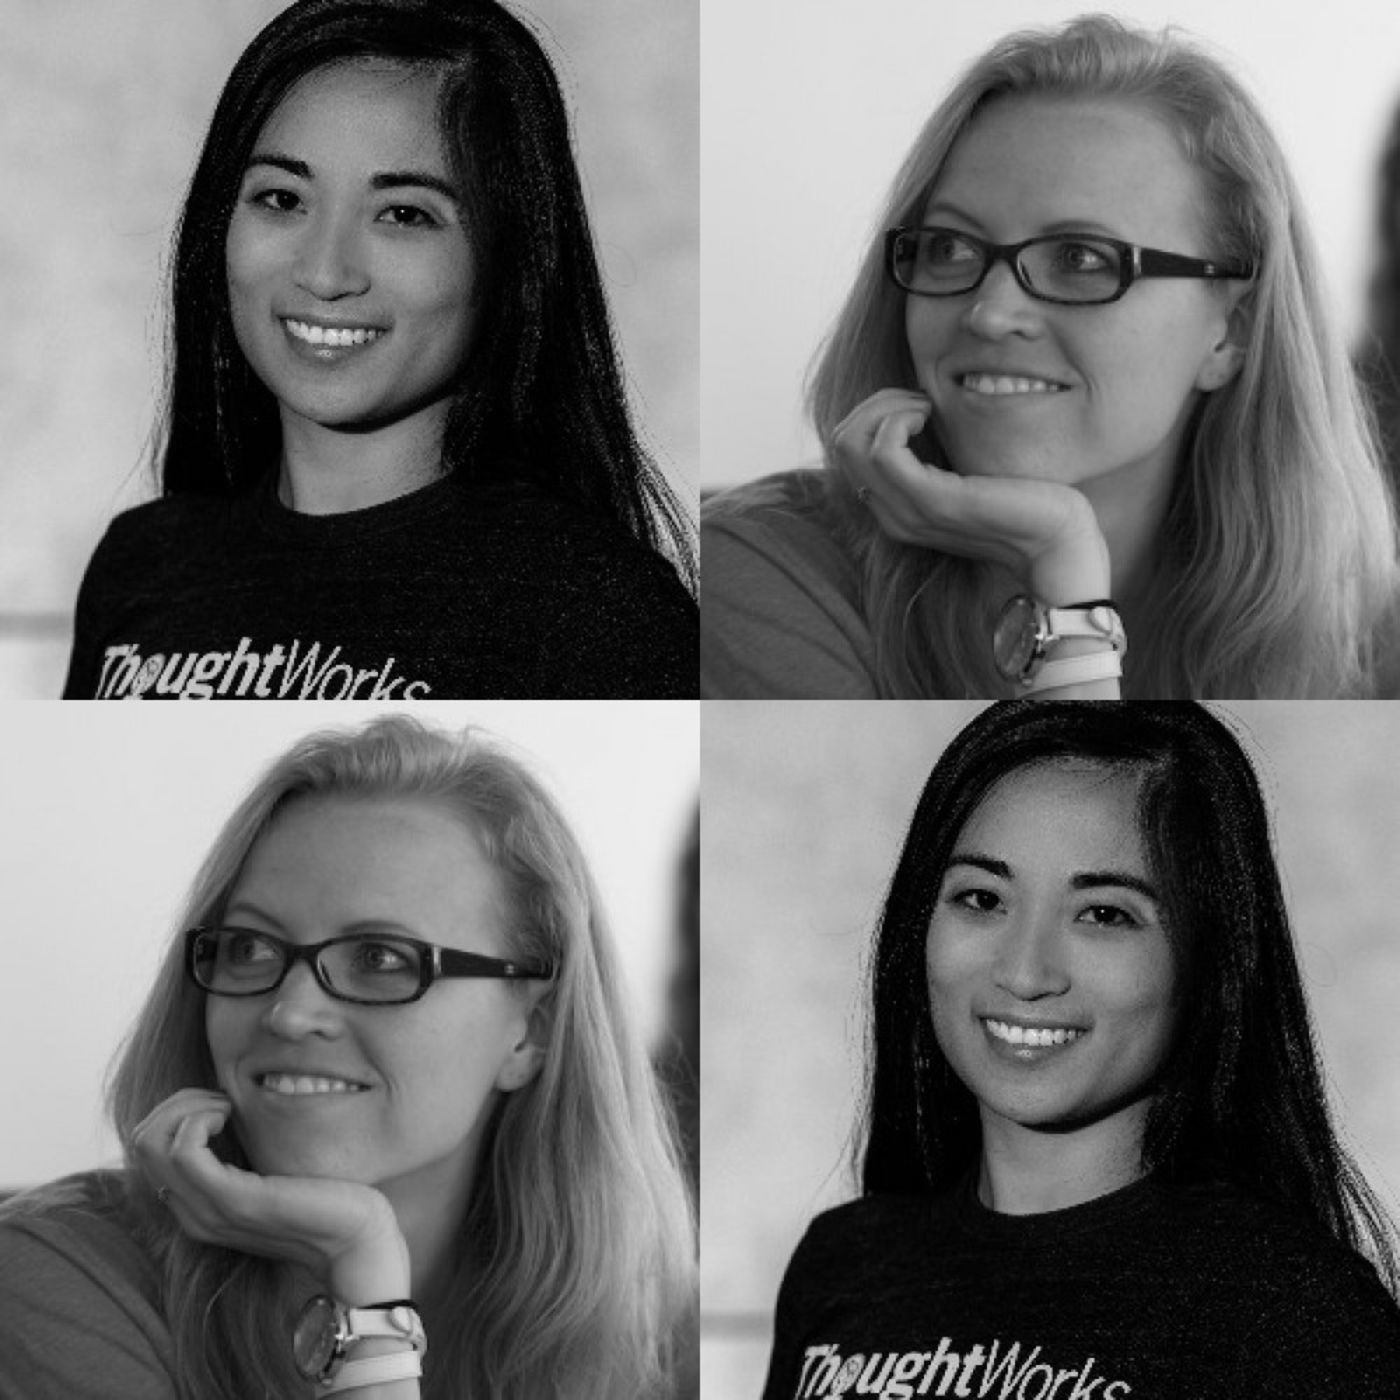 19: Journey Mapping, Startup Threats, and Building Inspiration - Part 2 - Rose Fan and Molly Dishman